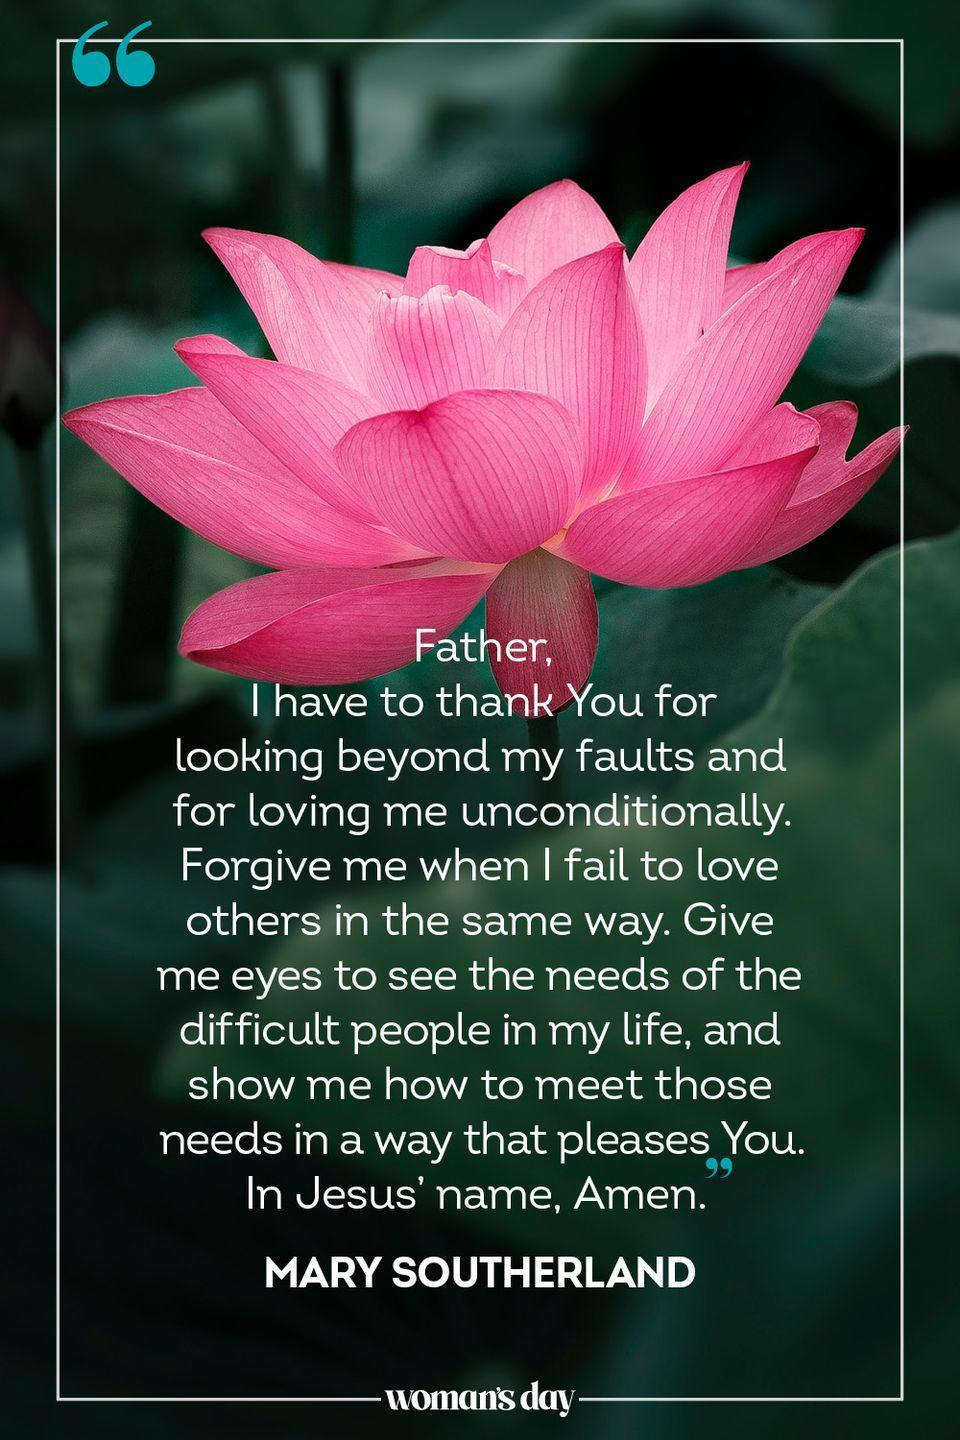 """<p>Father, </p><p>I have to thank You for looking beyond my faults and for loving me unconditionally. Forgive me when I fail to love others in the same way. Give me eyes to see the needs of the difficult people in my life, and show me how to meet those needs in a way that pleases You. </p><p>In Jesus' name, Amen. </p><p>— <a href=""""https://www.oneplace.com/devotionals/your-daily-prayer/a-prayer-for-loving-difficult-people-your-daily-prayer-may-30-11762780.html"""" rel=""""nofollow noopener"""" target=""""_blank"""" data-ylk=""""slk:Mary Southerland"""" class=""""link rapid-noclick-resp"""">Mary Southerland</a></p>"""